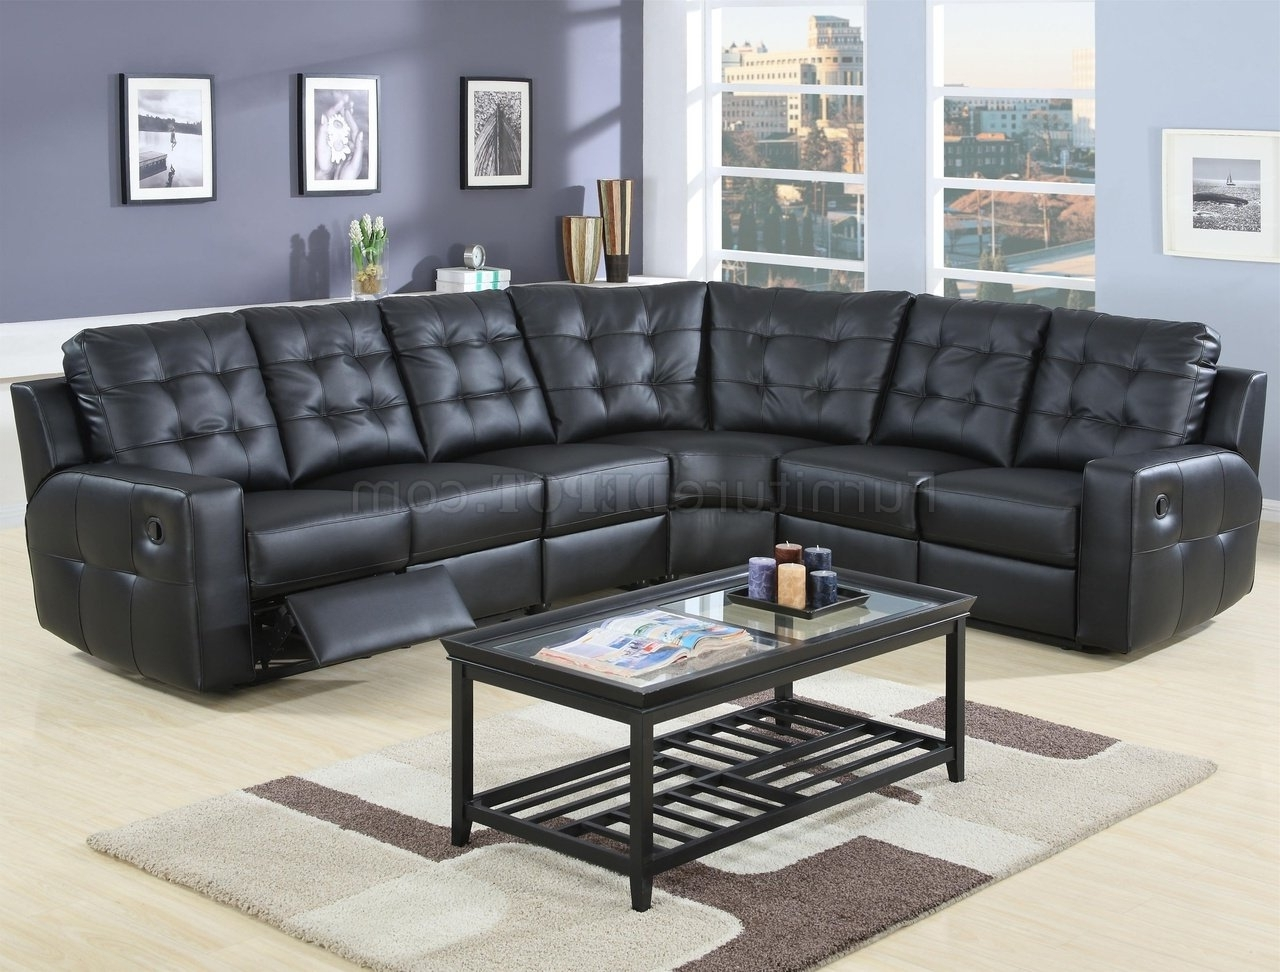 Trendy Leather Recliner Sectional Sofas Pertaining To Modern Leather Double Reclining Sectional Sofa 600315 Black (View 10 of 20)